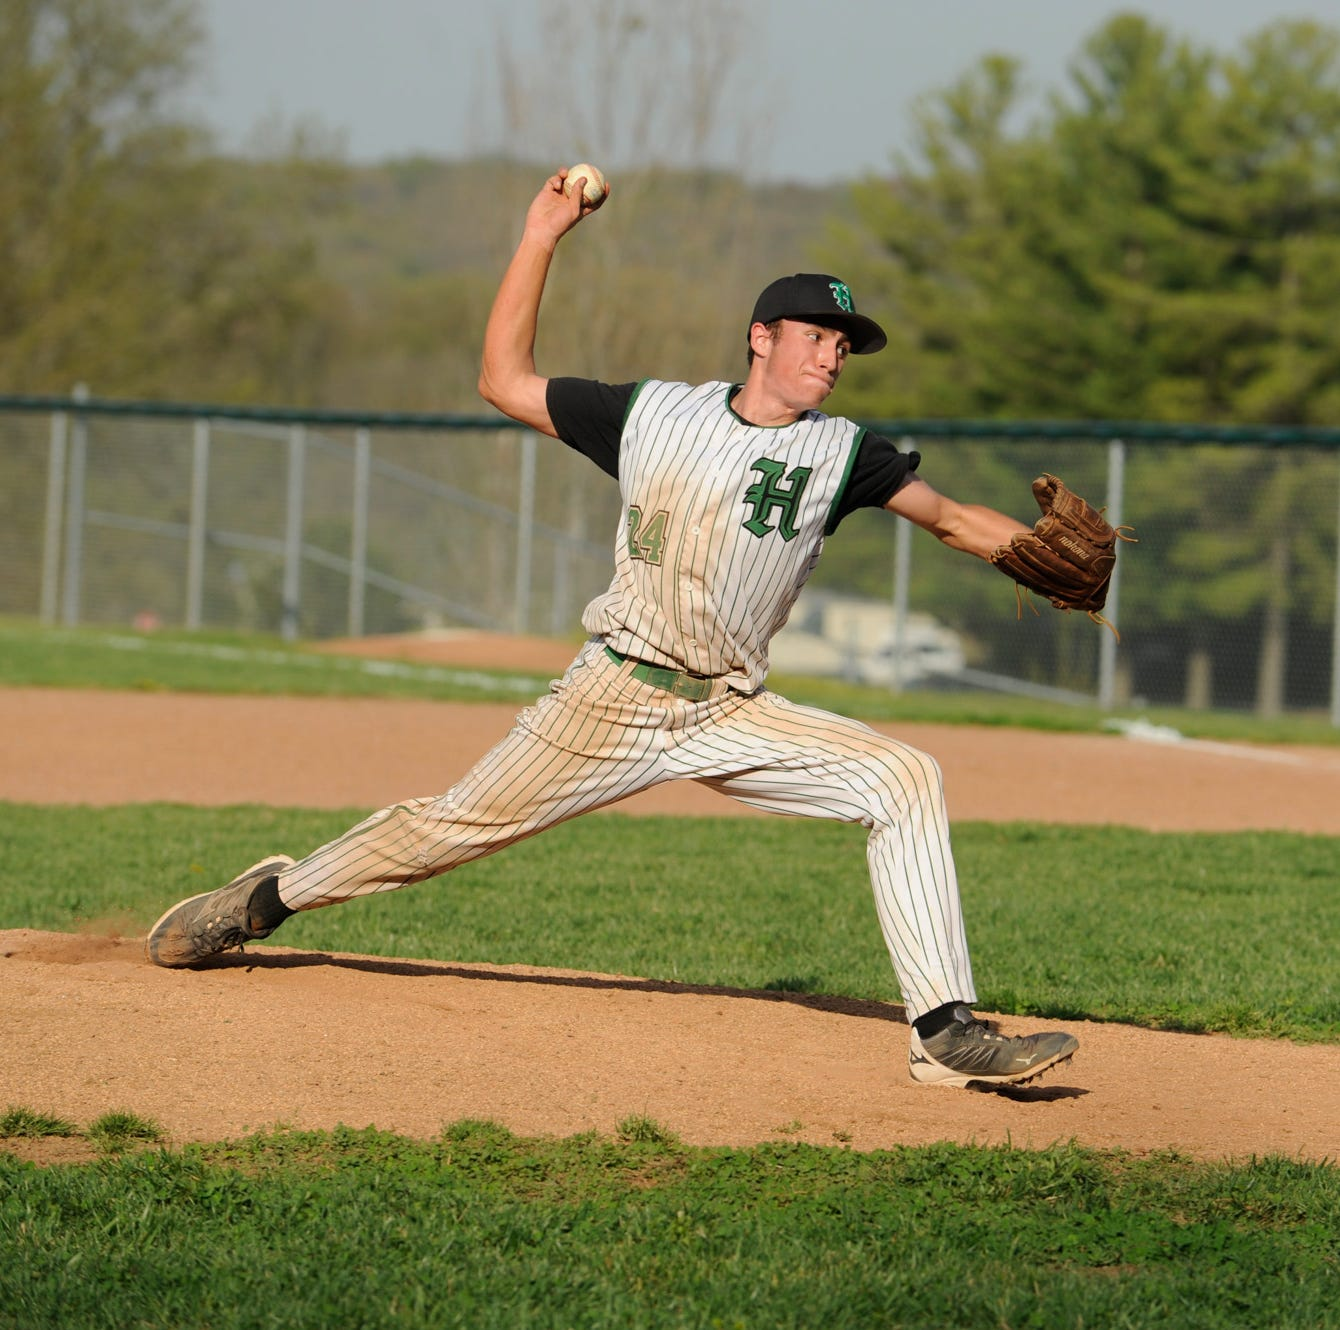 OHIO HS BASEBALL: Huntington defeats Chillicothe 2-0 behind Gavin Free's complete game